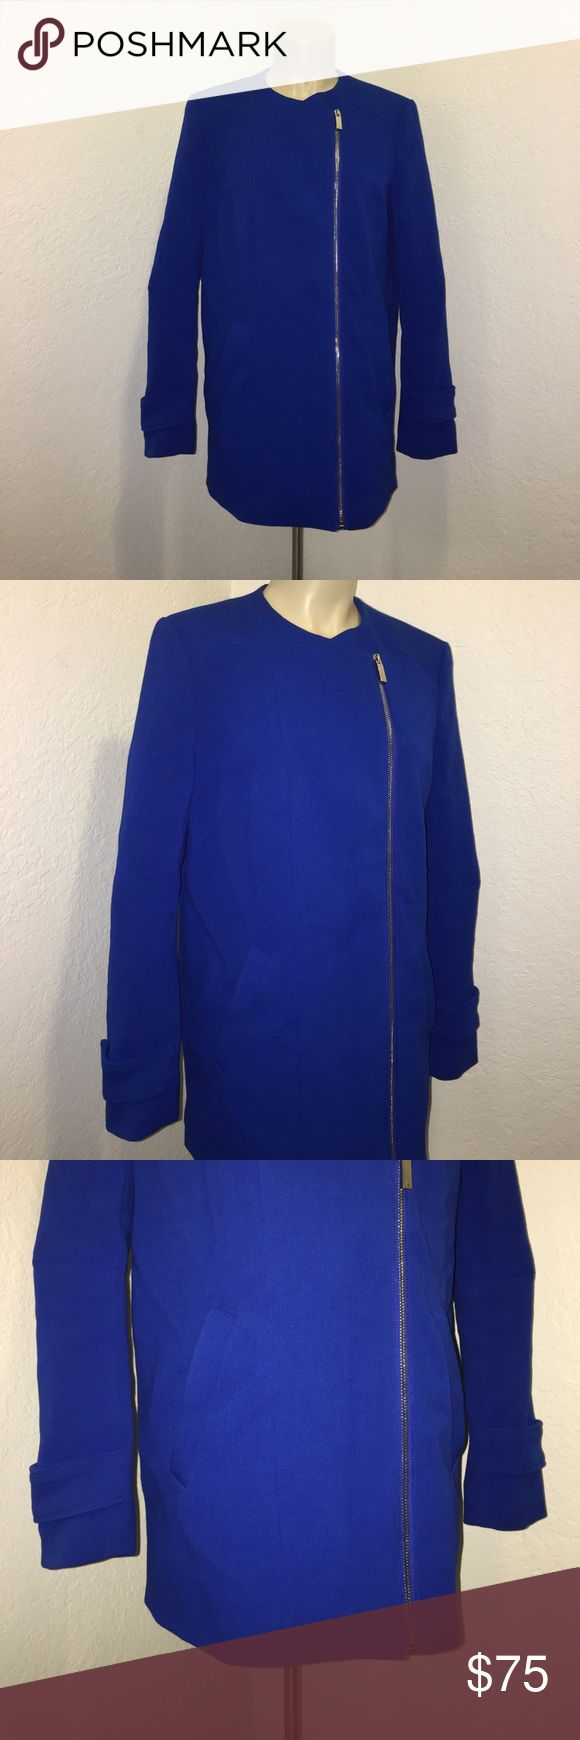 Vince Camuto Royal Blue Zip Up Coat Blazer XS Super stylish and chic blue zip Up coat blazer by Vince Camuto in excellent preowned condition. Size XS. Perfect for all occasions! Vince Camuto Jackets & Coats